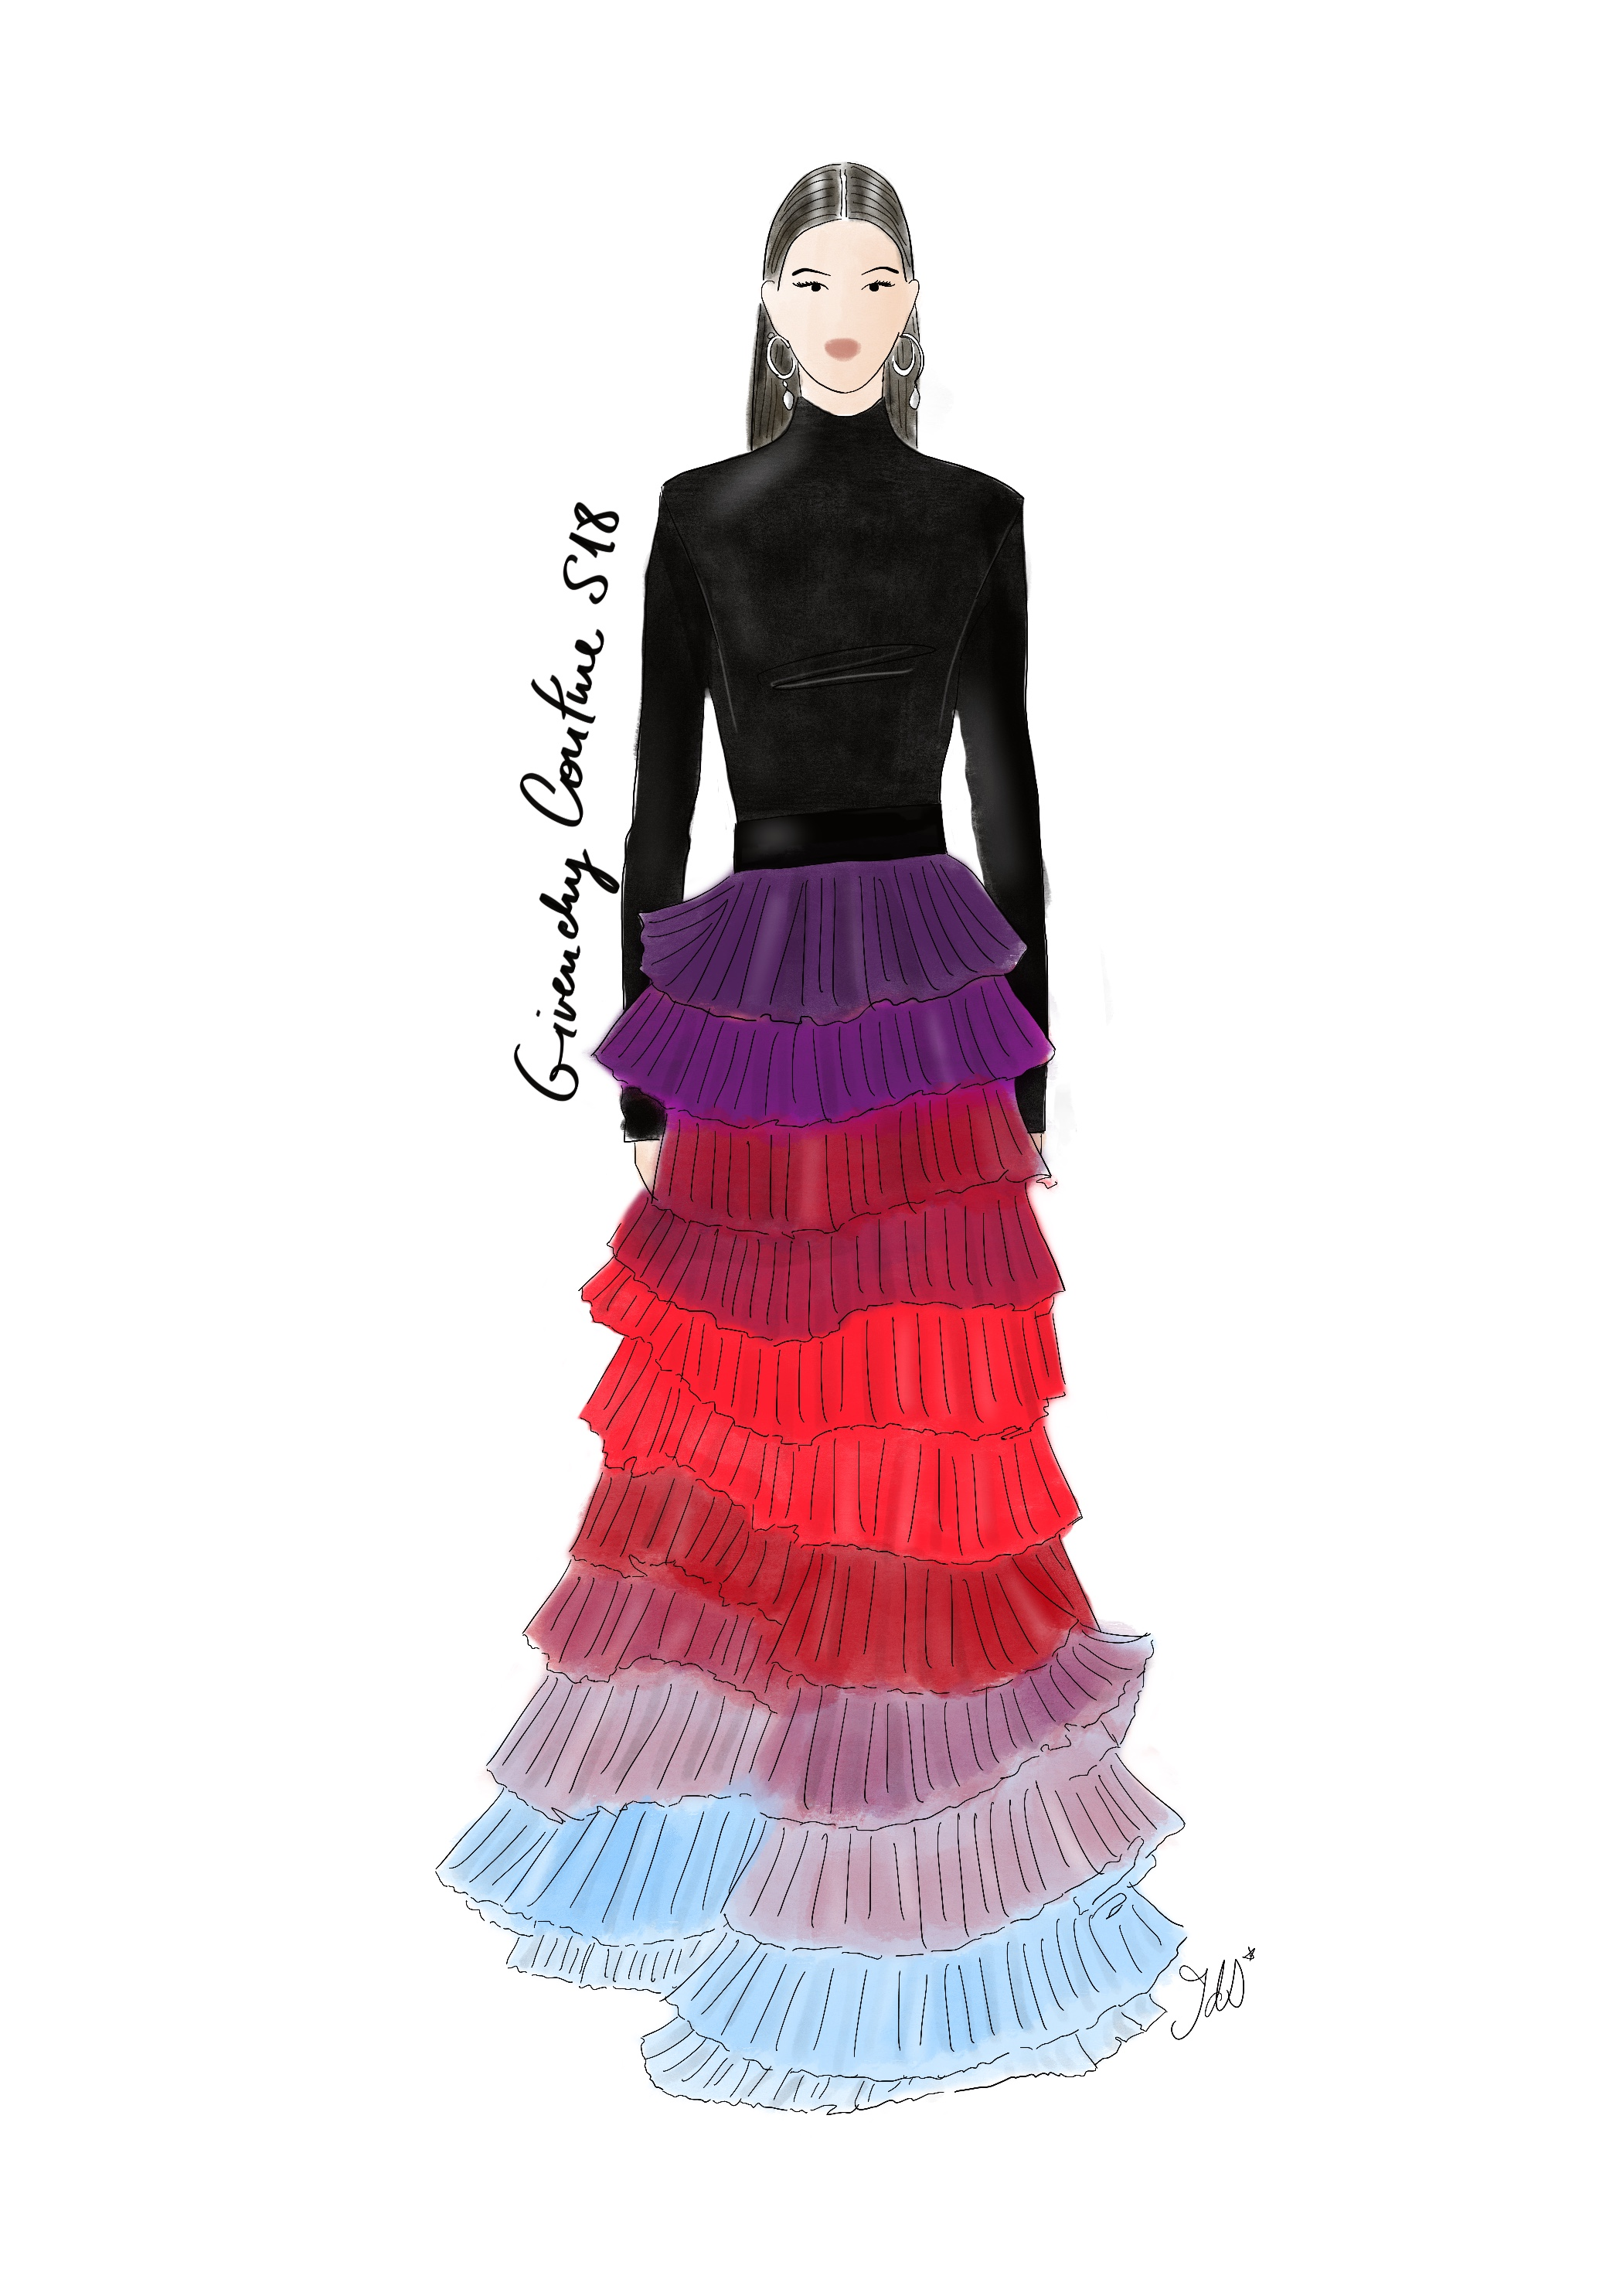 Givenchy Haute Couture Spring 18.jpg